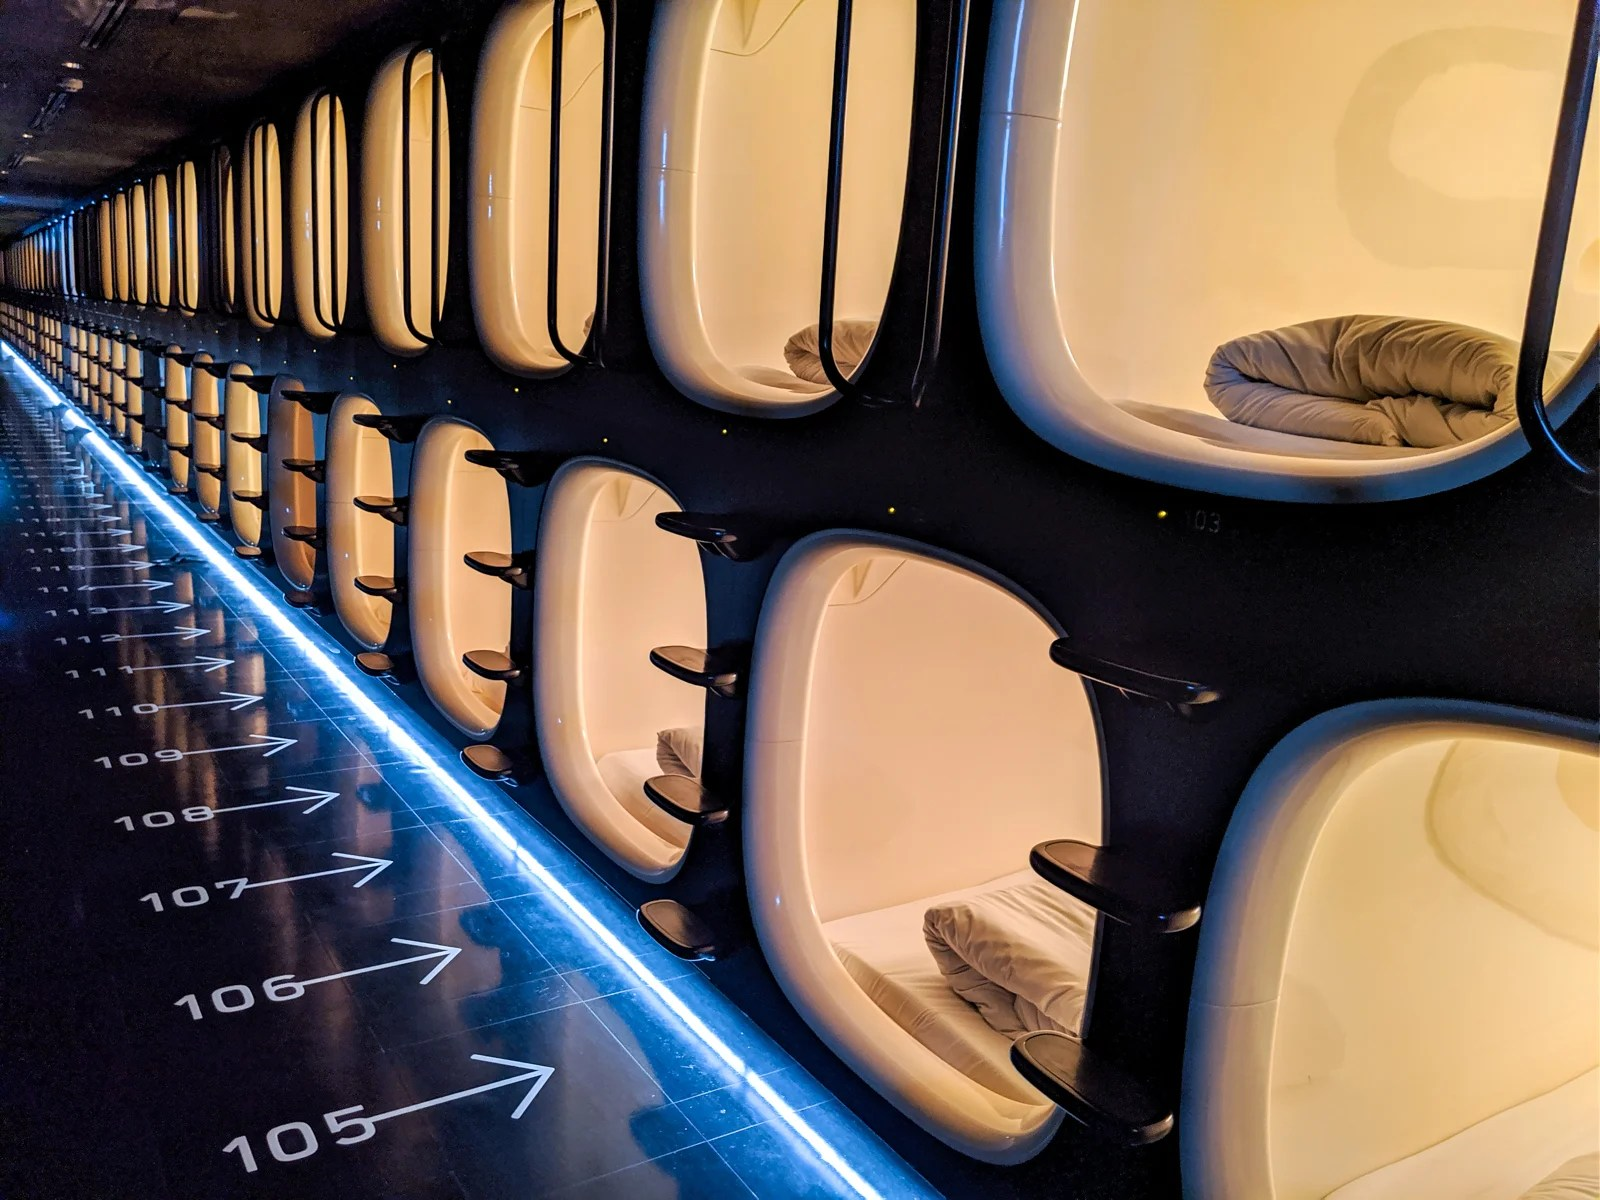 Now departing: Your dreams. A review of Nine Hours, a Tokyo airport capsule hotel